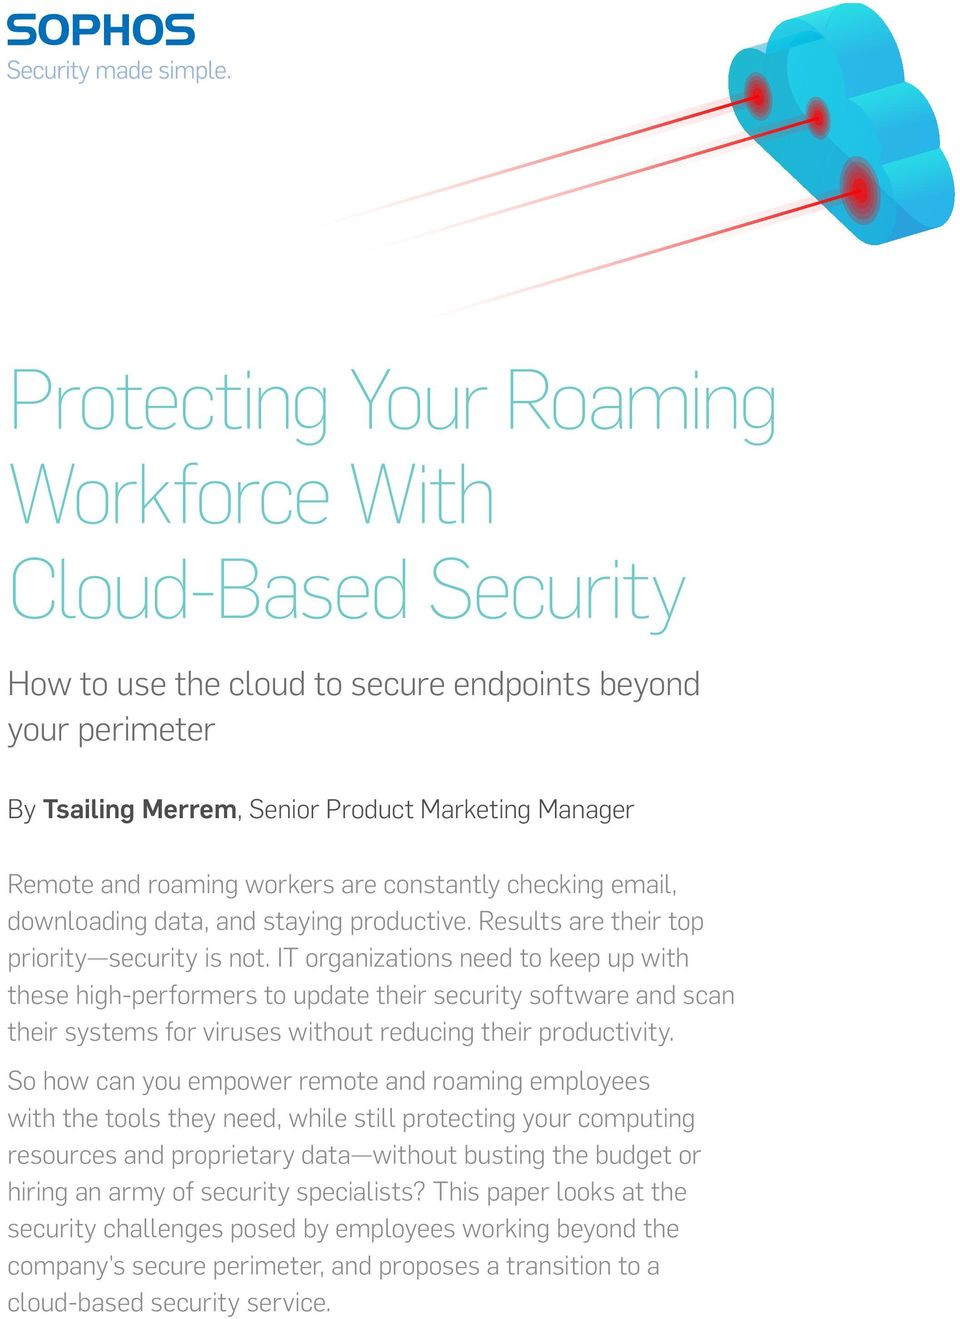 IT organizations need to keep up with these high-performers to update their security software and scan their systems for viruses without reducing their productivity.